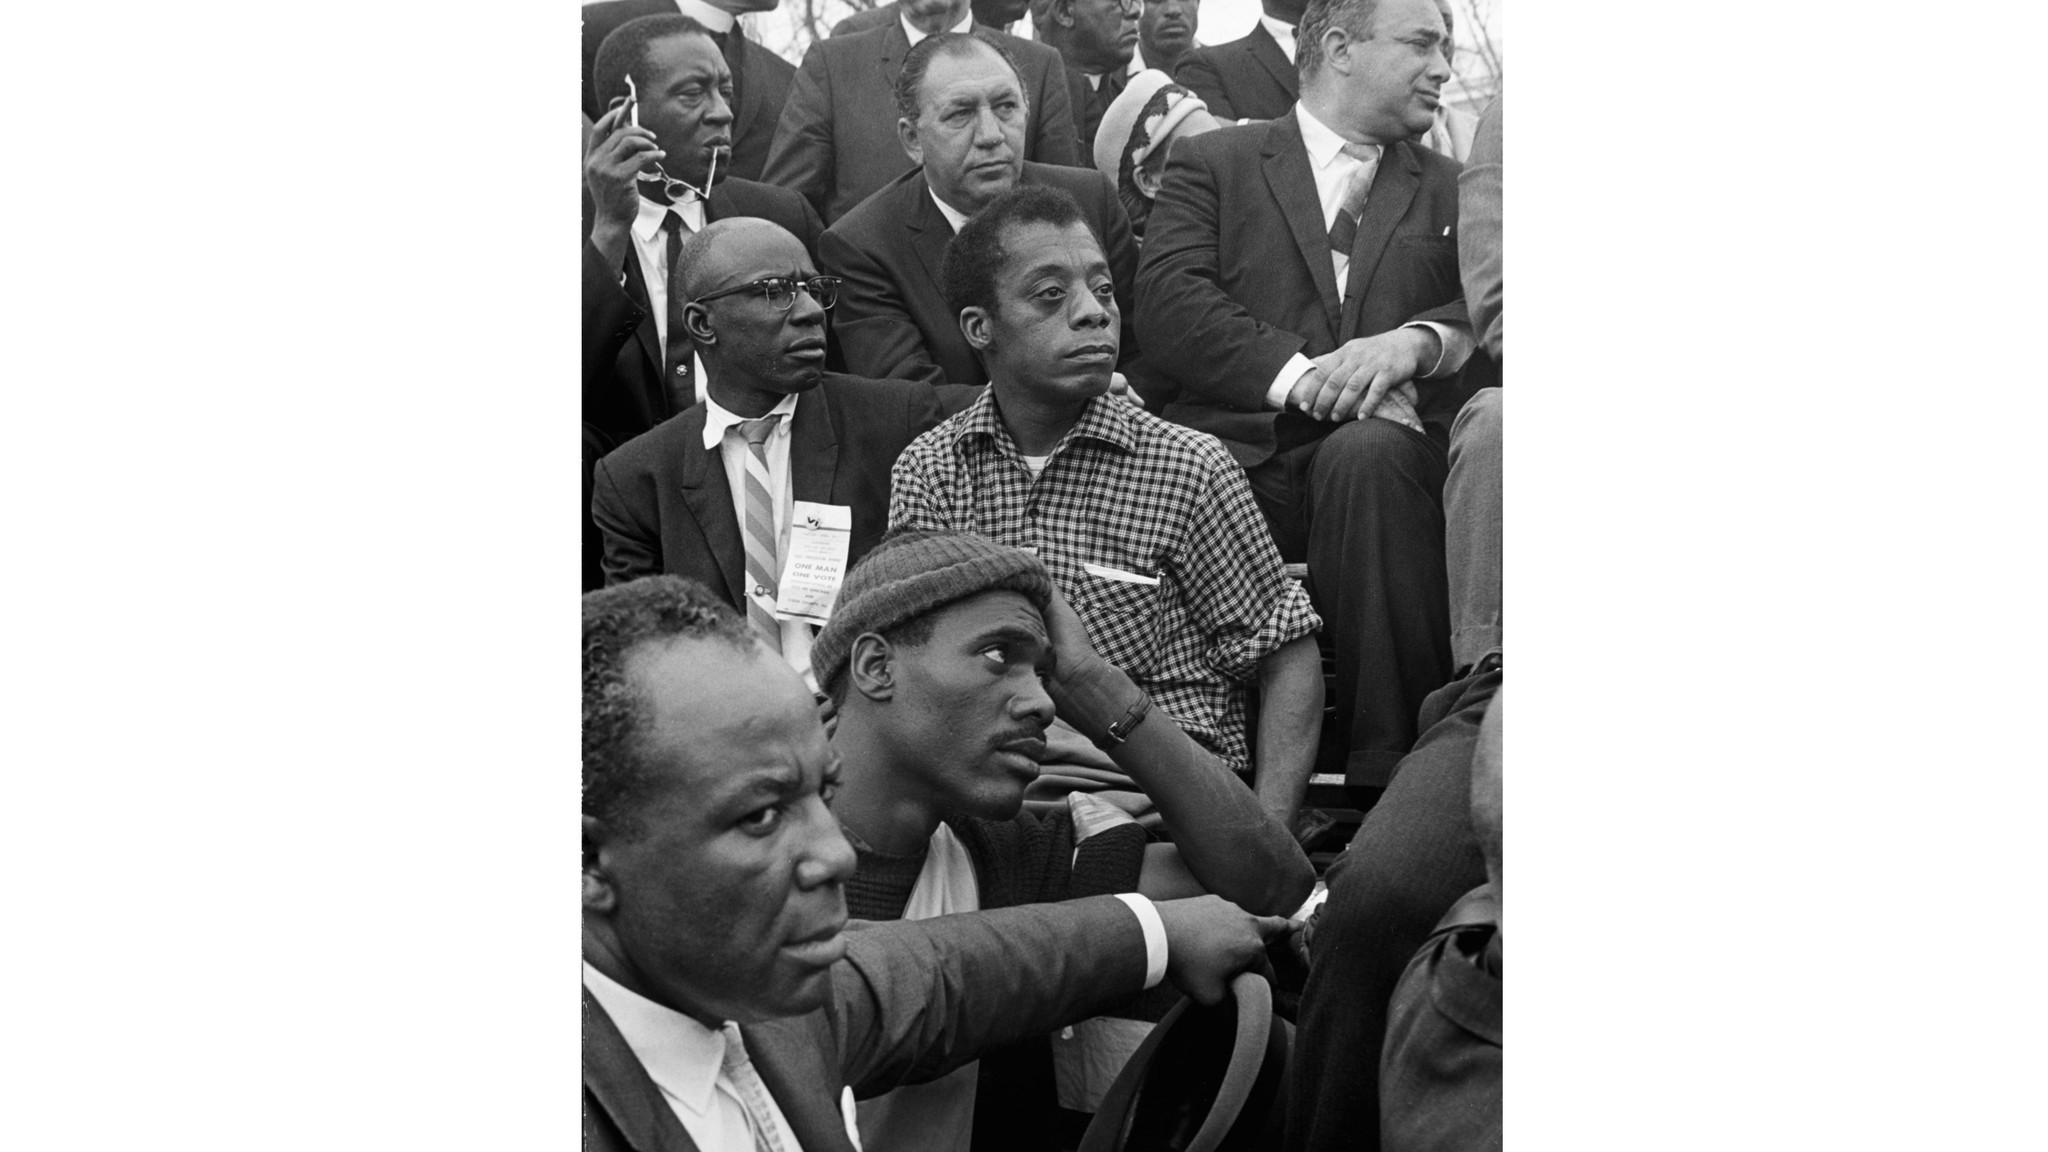 James Baldwin listens to the Rev. Martin Luther King, Jr. at the culmination of the march from Selma to Montgomery, Ala., in 1965.